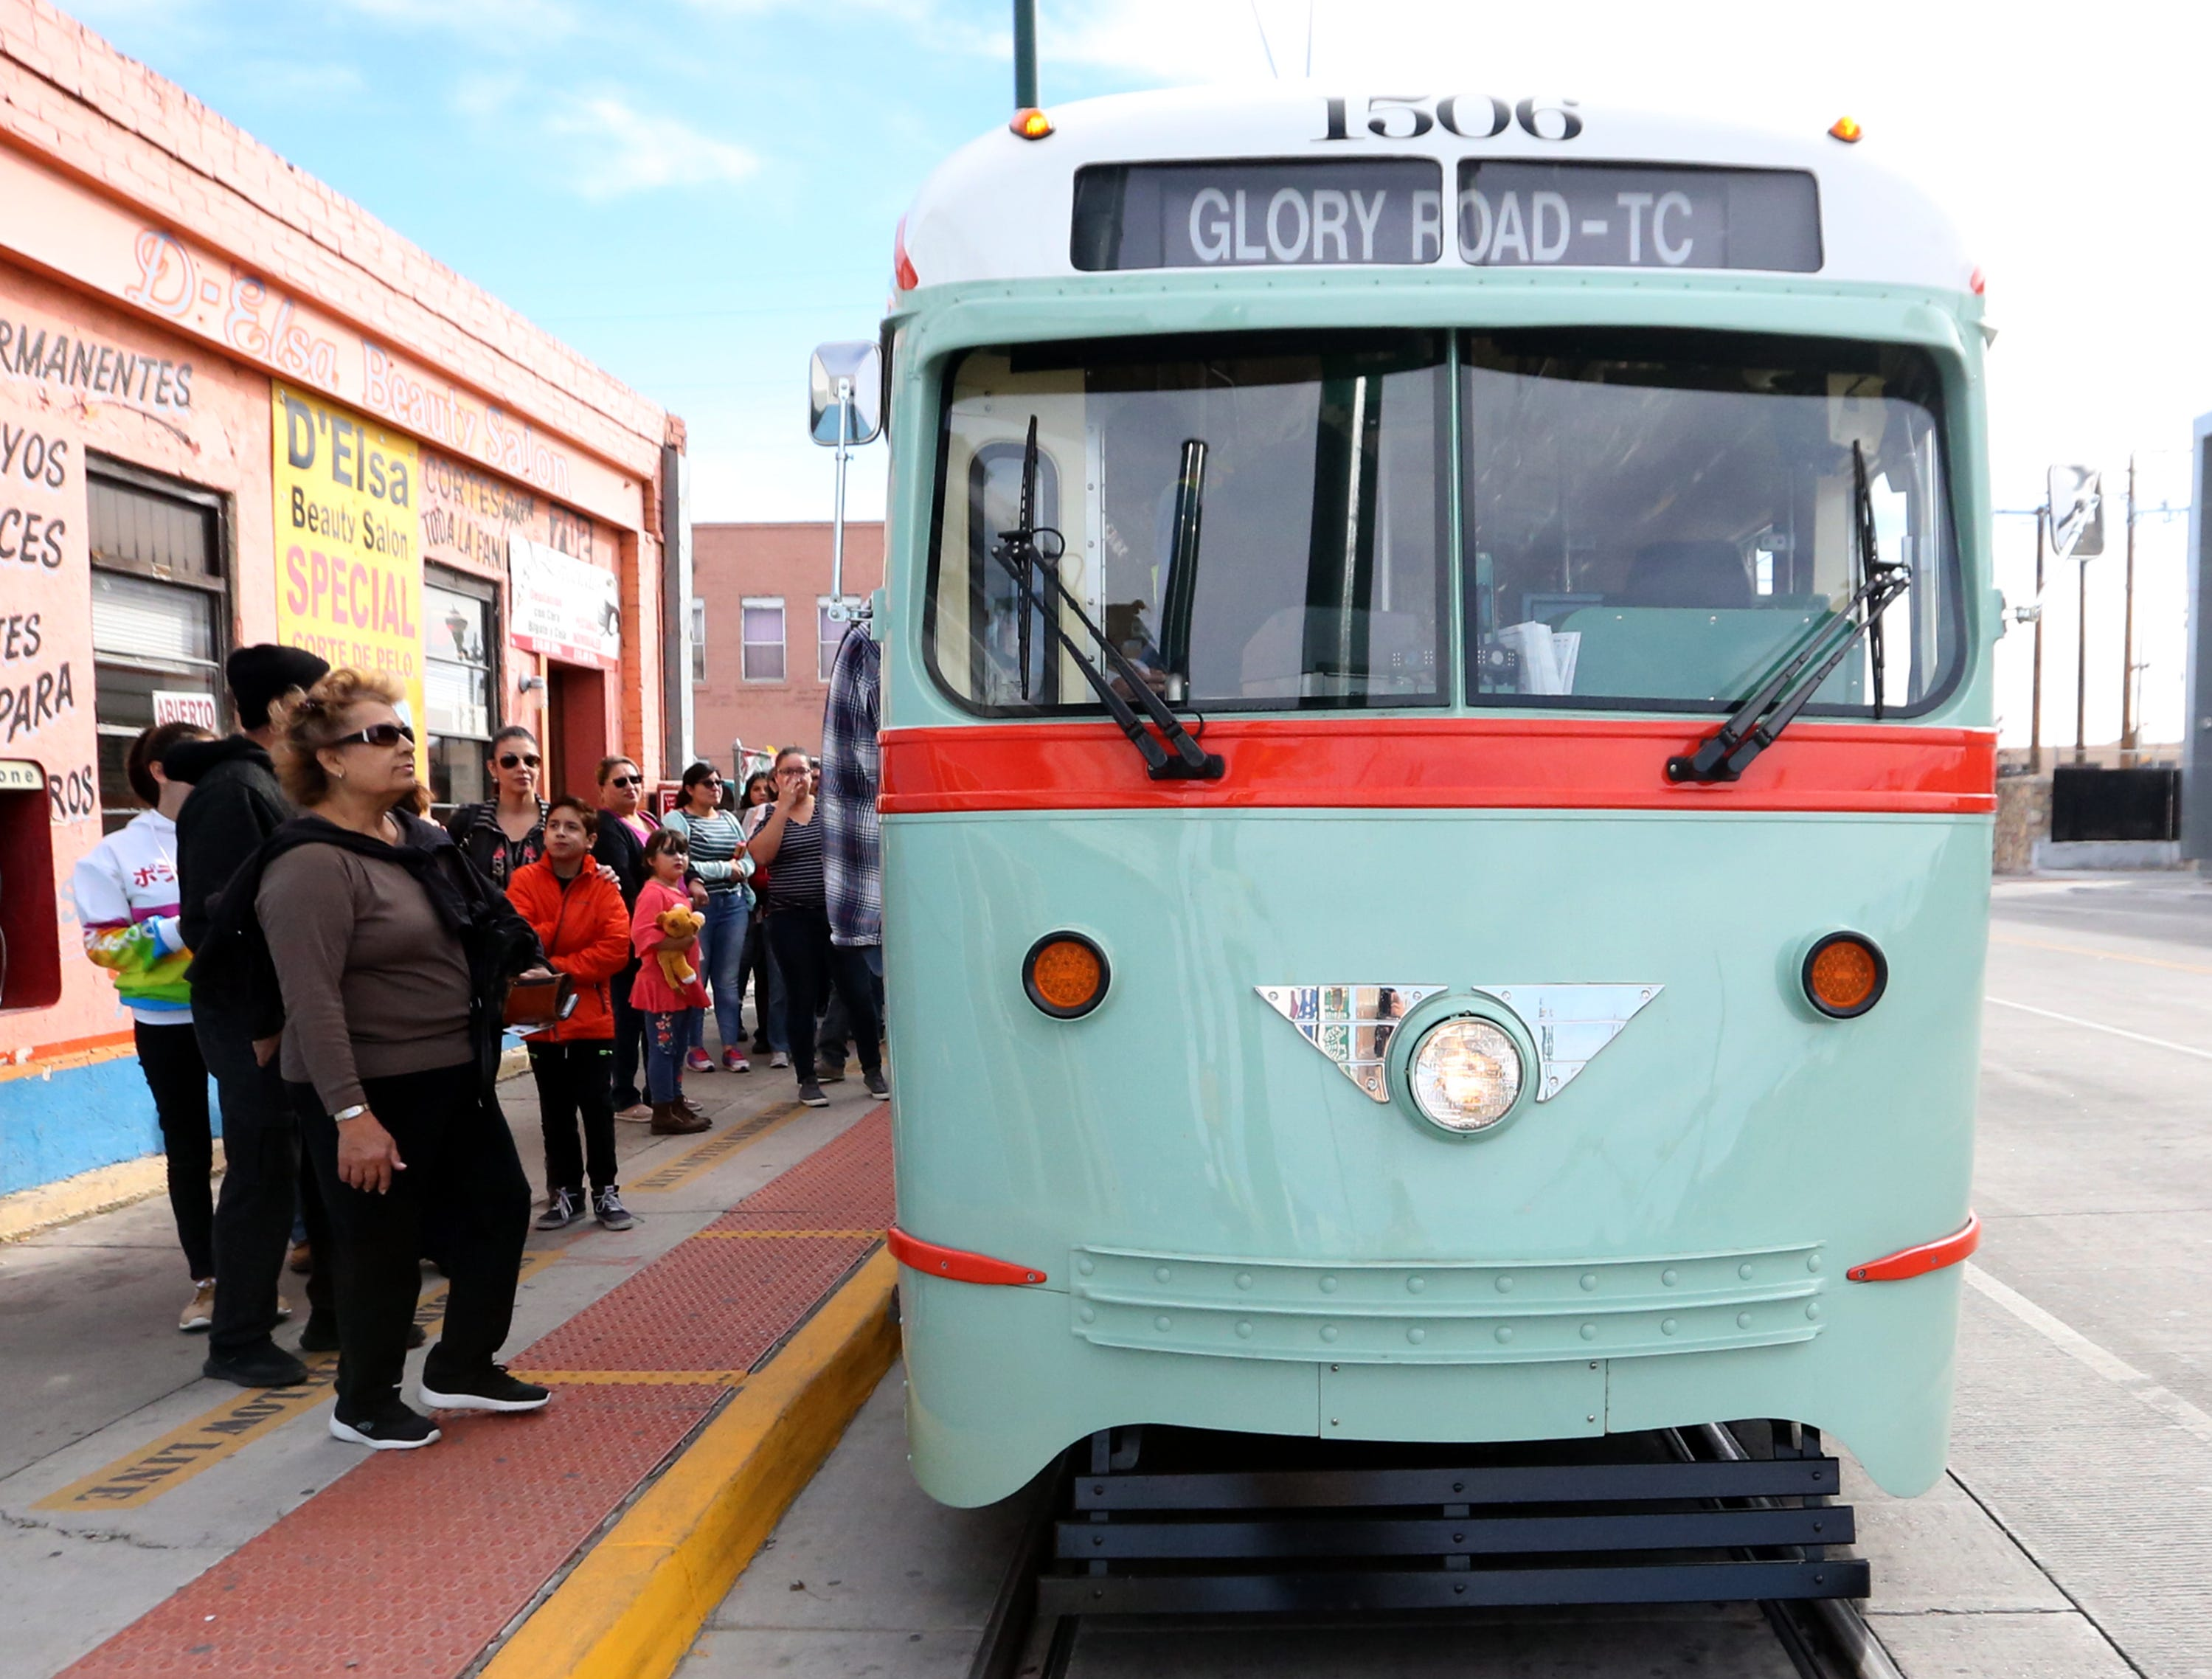 Passengers line up to board streetcar 1506 during one of its stops along Santa Fe Street Friday in South El Paso.